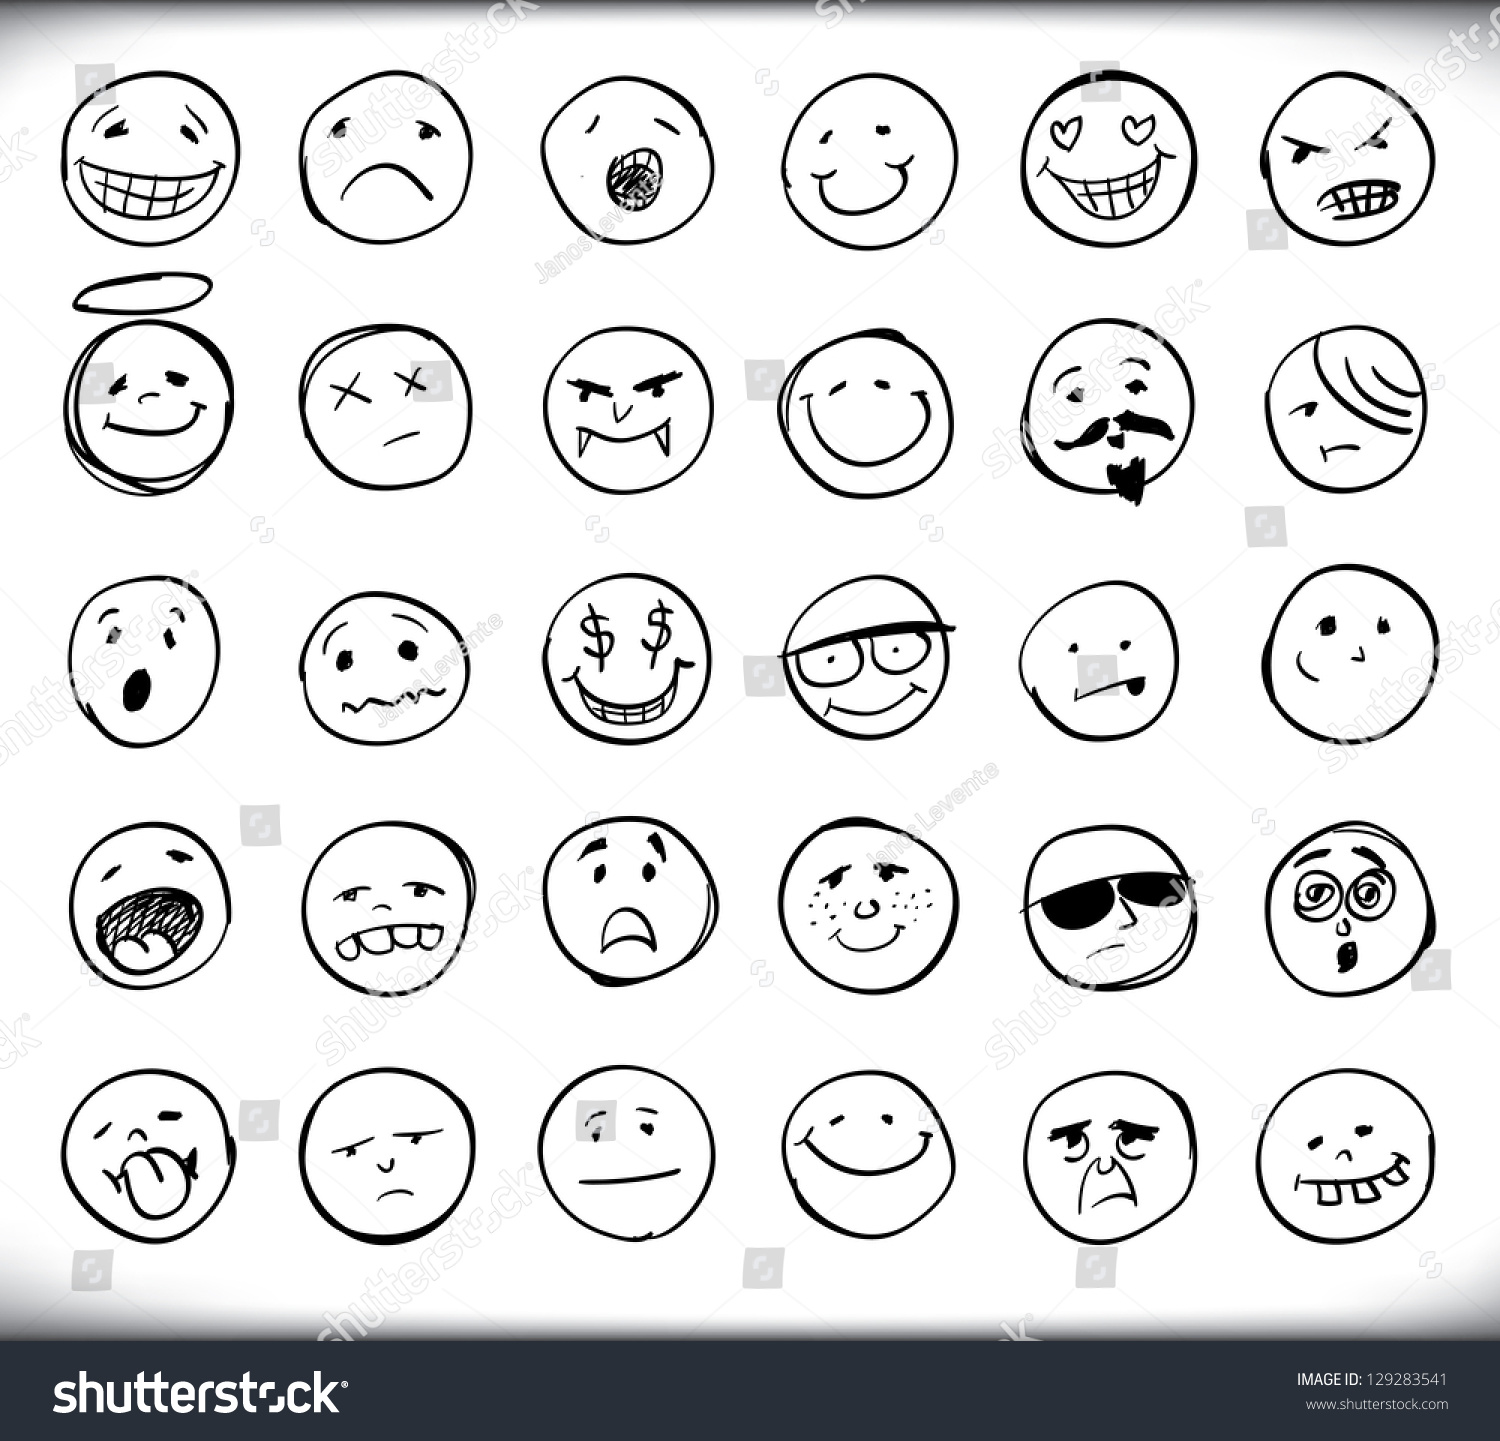 Set thirty hand drawn emoticons smileys stock vector 129283541 set of thirty hand drawn emoticons or smileys each with a different facial expression and emotion buycottarizona